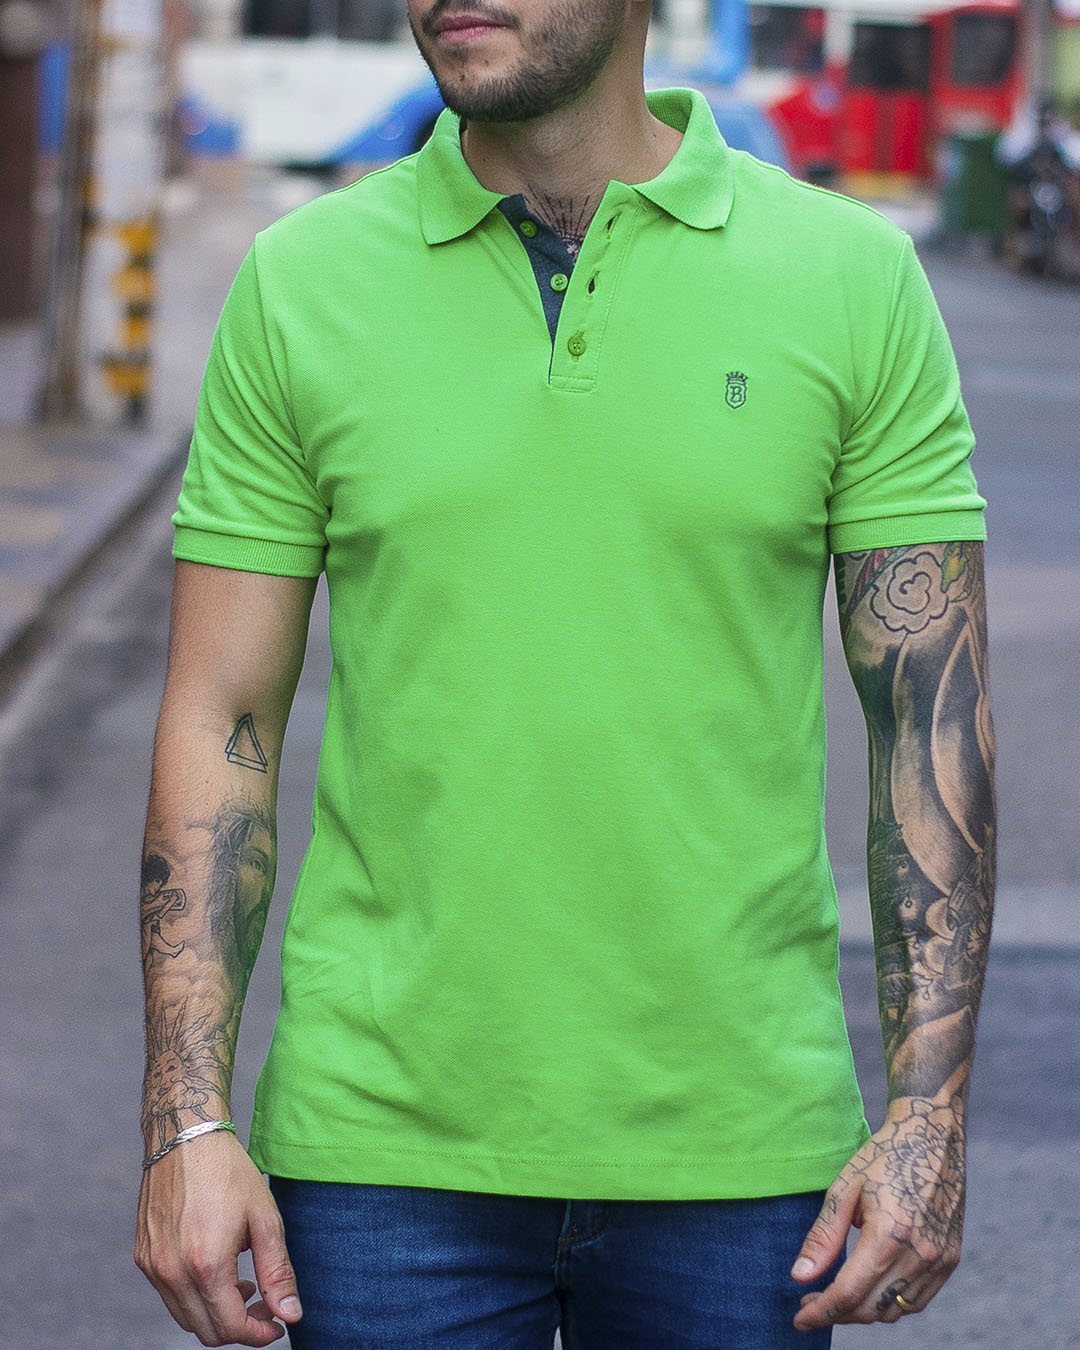 CAMISA POLO BLACK WEST VERDE LIMAO